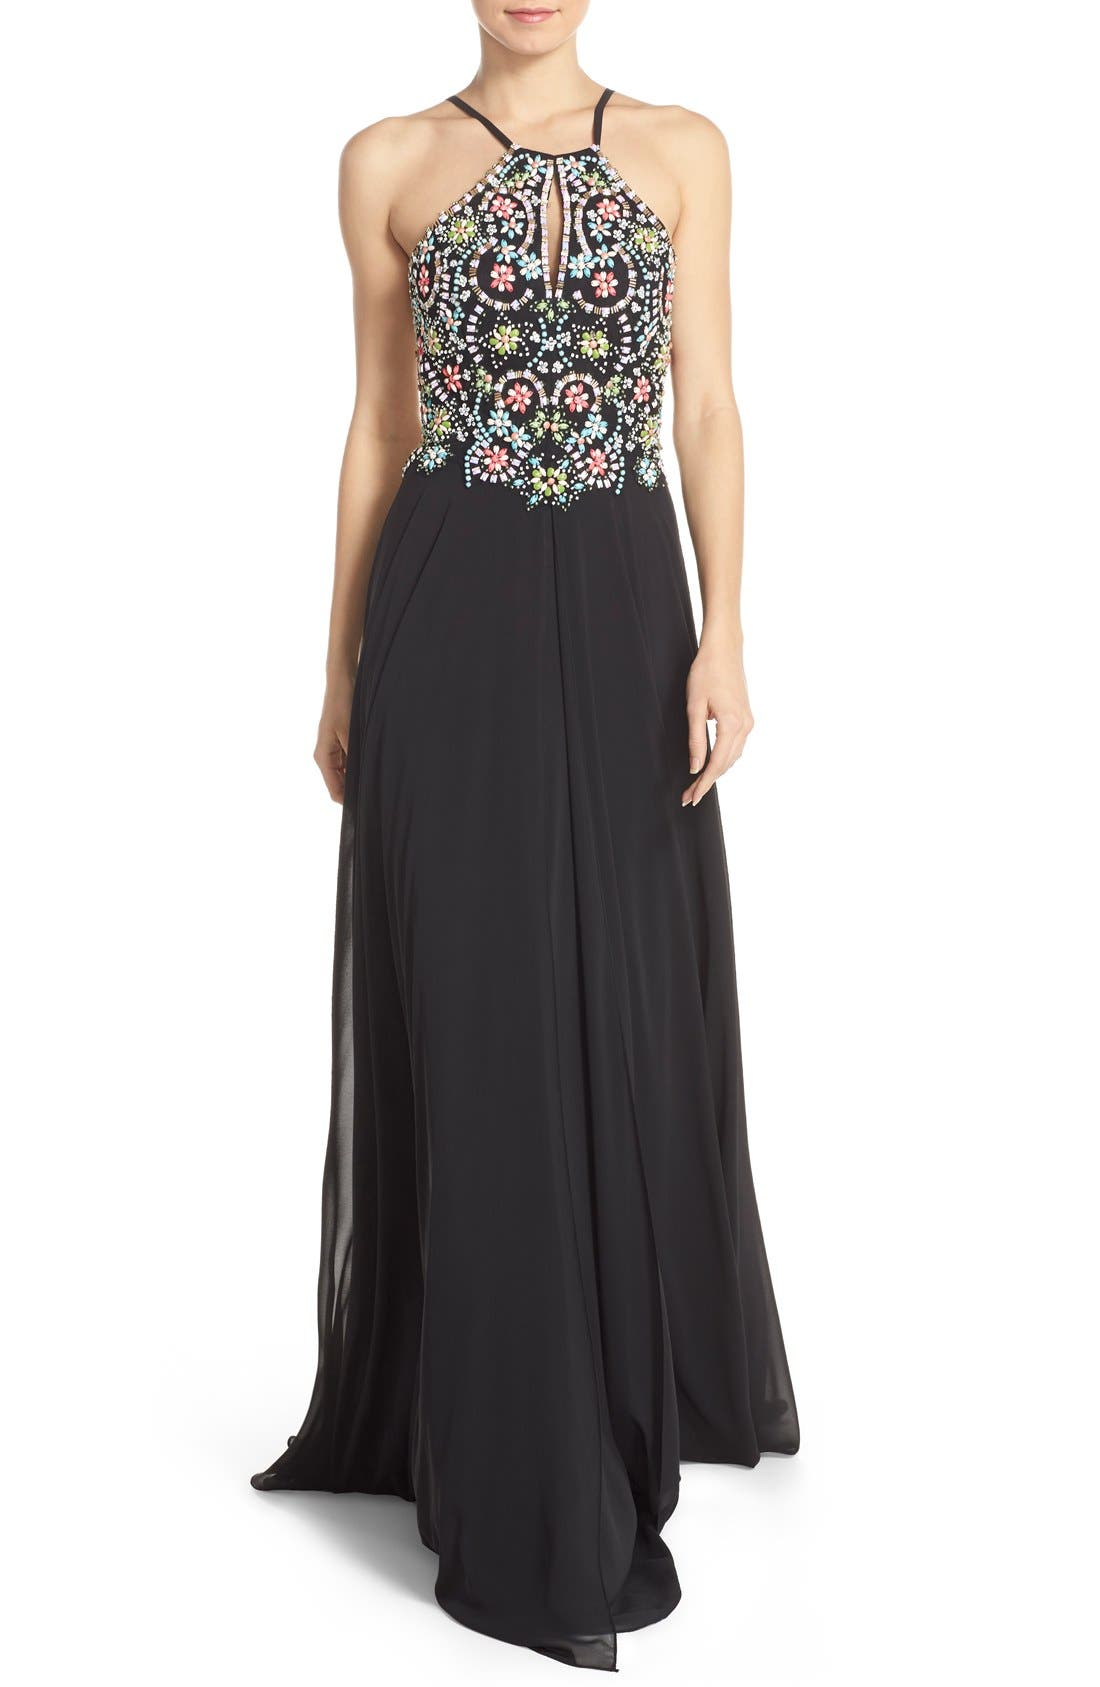 Alternate Image 1 Selected - Faviana Embellished Chiffon Fit & Flare Gown